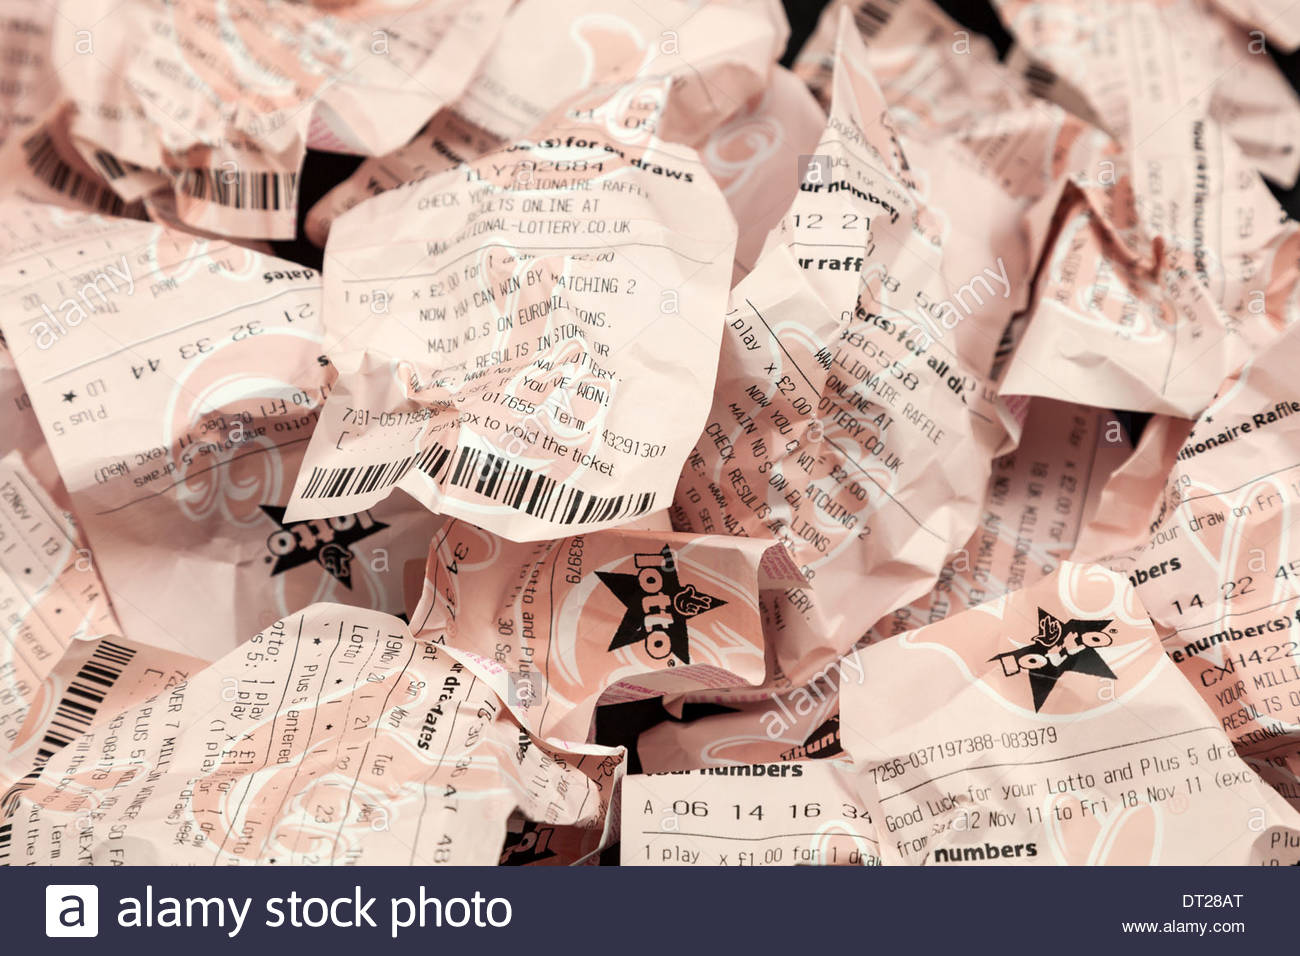 Screwed up lottery tickets - Stock Image